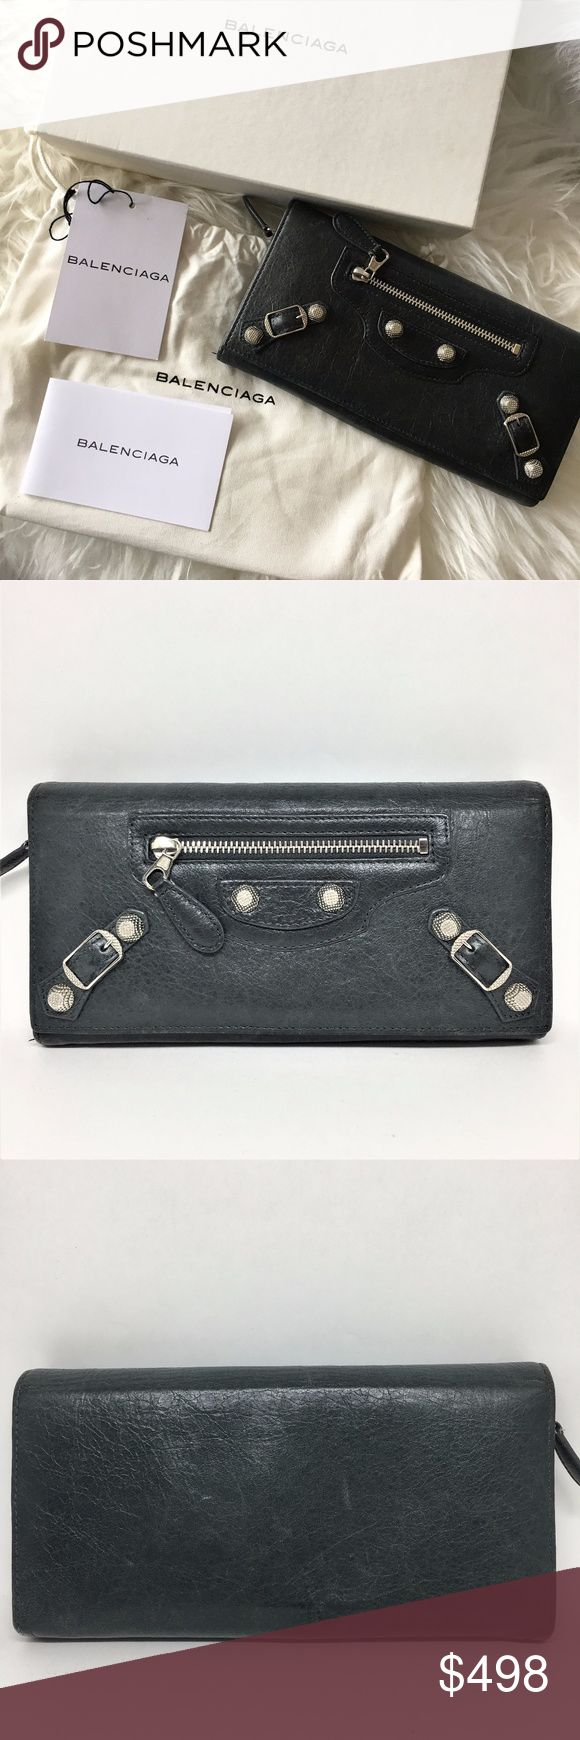 """BALENCIAGA Giant City Wallet Pre-owned Approx size: H: 4"""", L: 7.5"""". D: 1"""" Color: Looks black but it's dark green (olive) with silver hardware Closure: snap 13 credit card slots, 4 compartments, 1 zip pocket with 2 compartments inside, small pocket exterior Includes care card, tag, dust bag and original box Condition: BBB (refer to last picture for definition) In very good condition. No scuffing on the leaher. Some scratches on the leather on the exterior back side. (refer to pictures)…"""